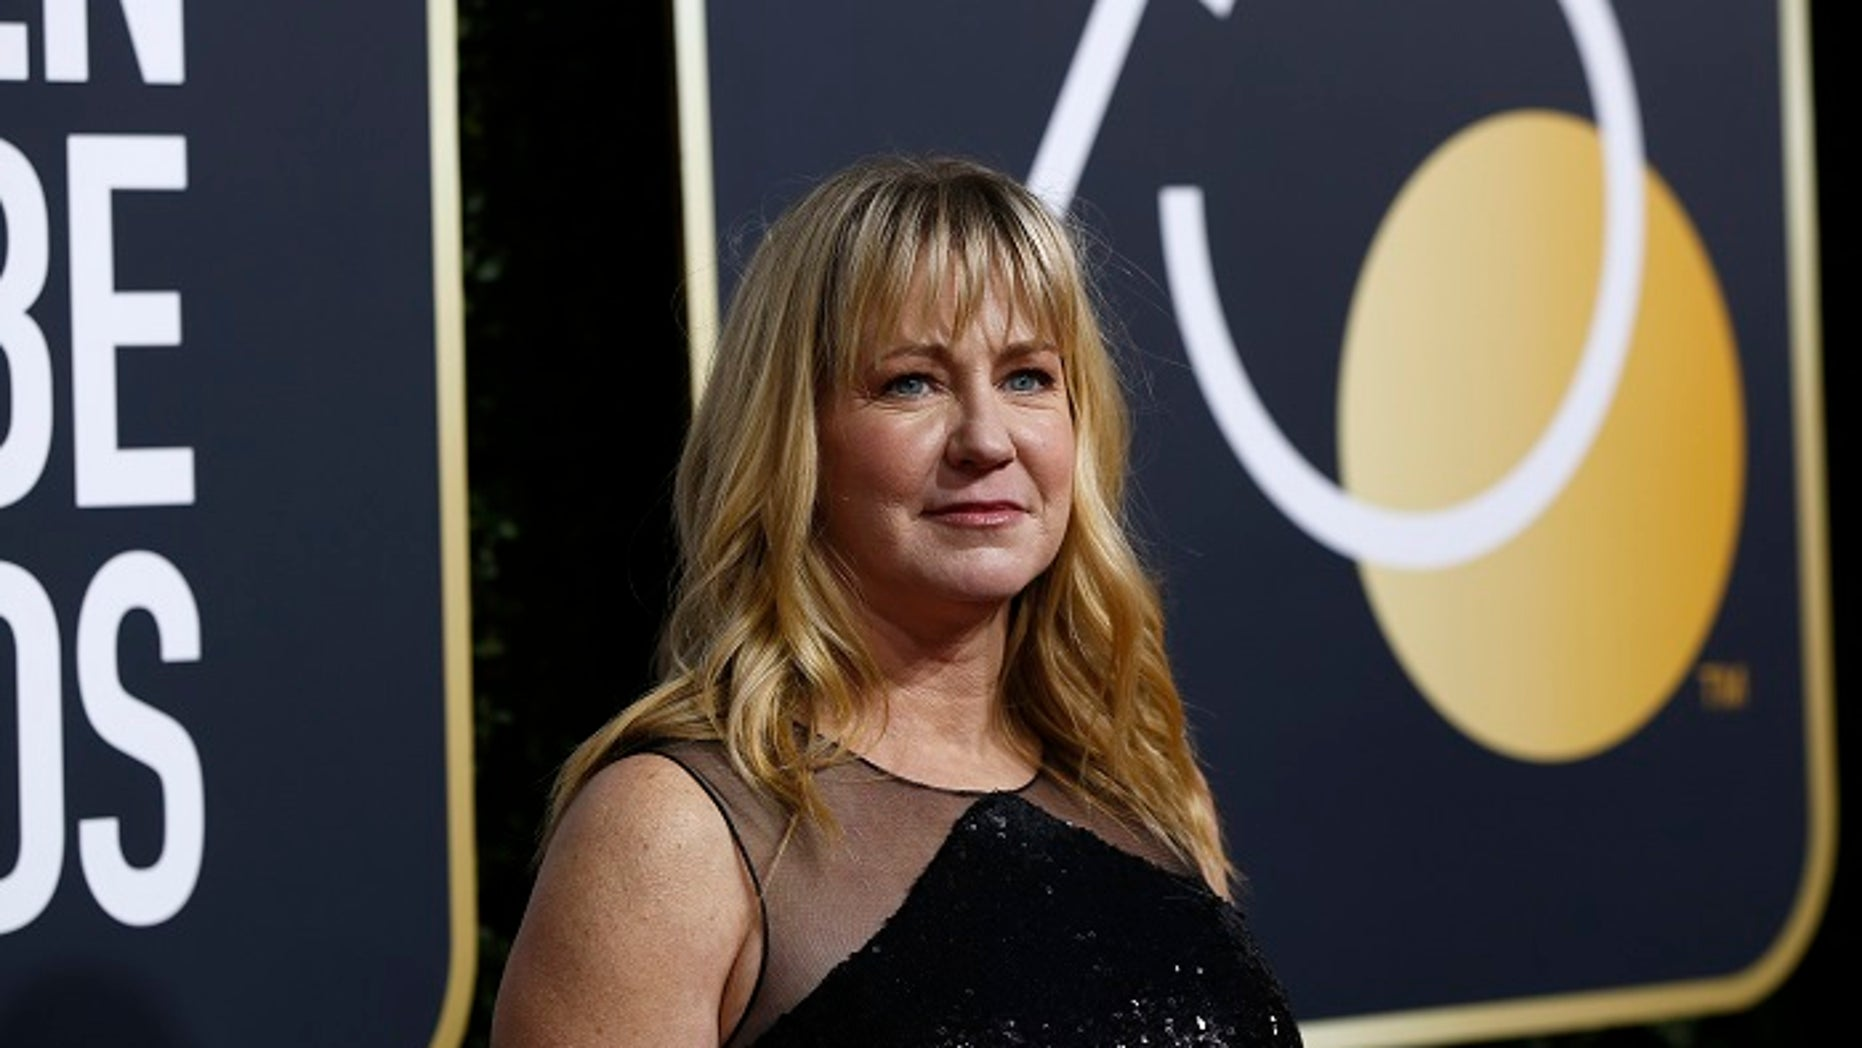 A former district attorney claimed Tonya Harding was always involved in the attack on ice skating rival Nancy Kerrigan.